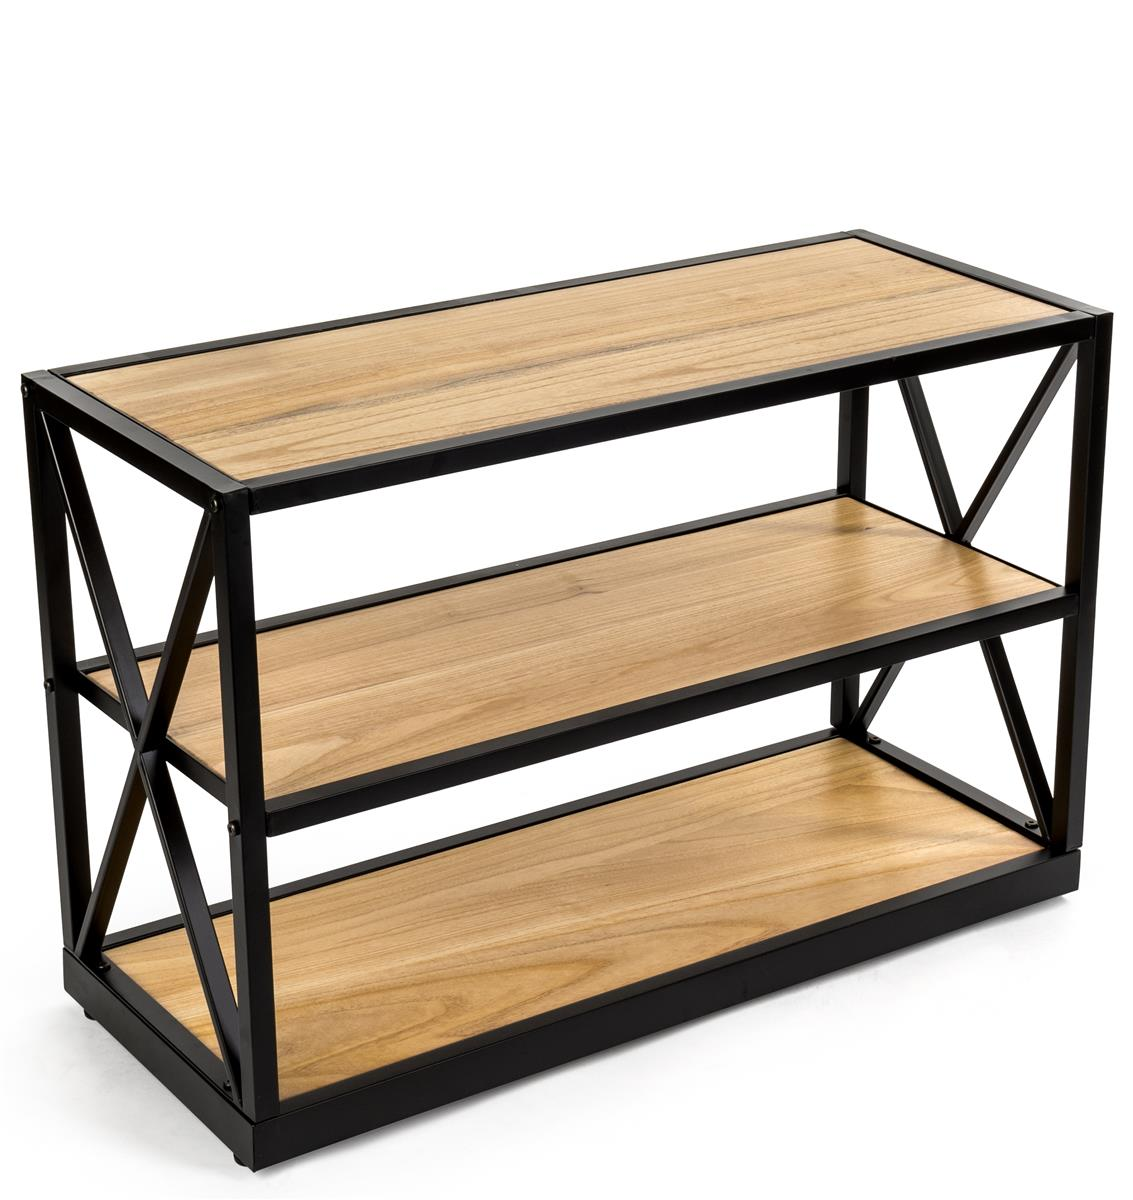 Steel Frame X Sided Shelving Unit With 3 Solid Wood Tiers Open Back Natural